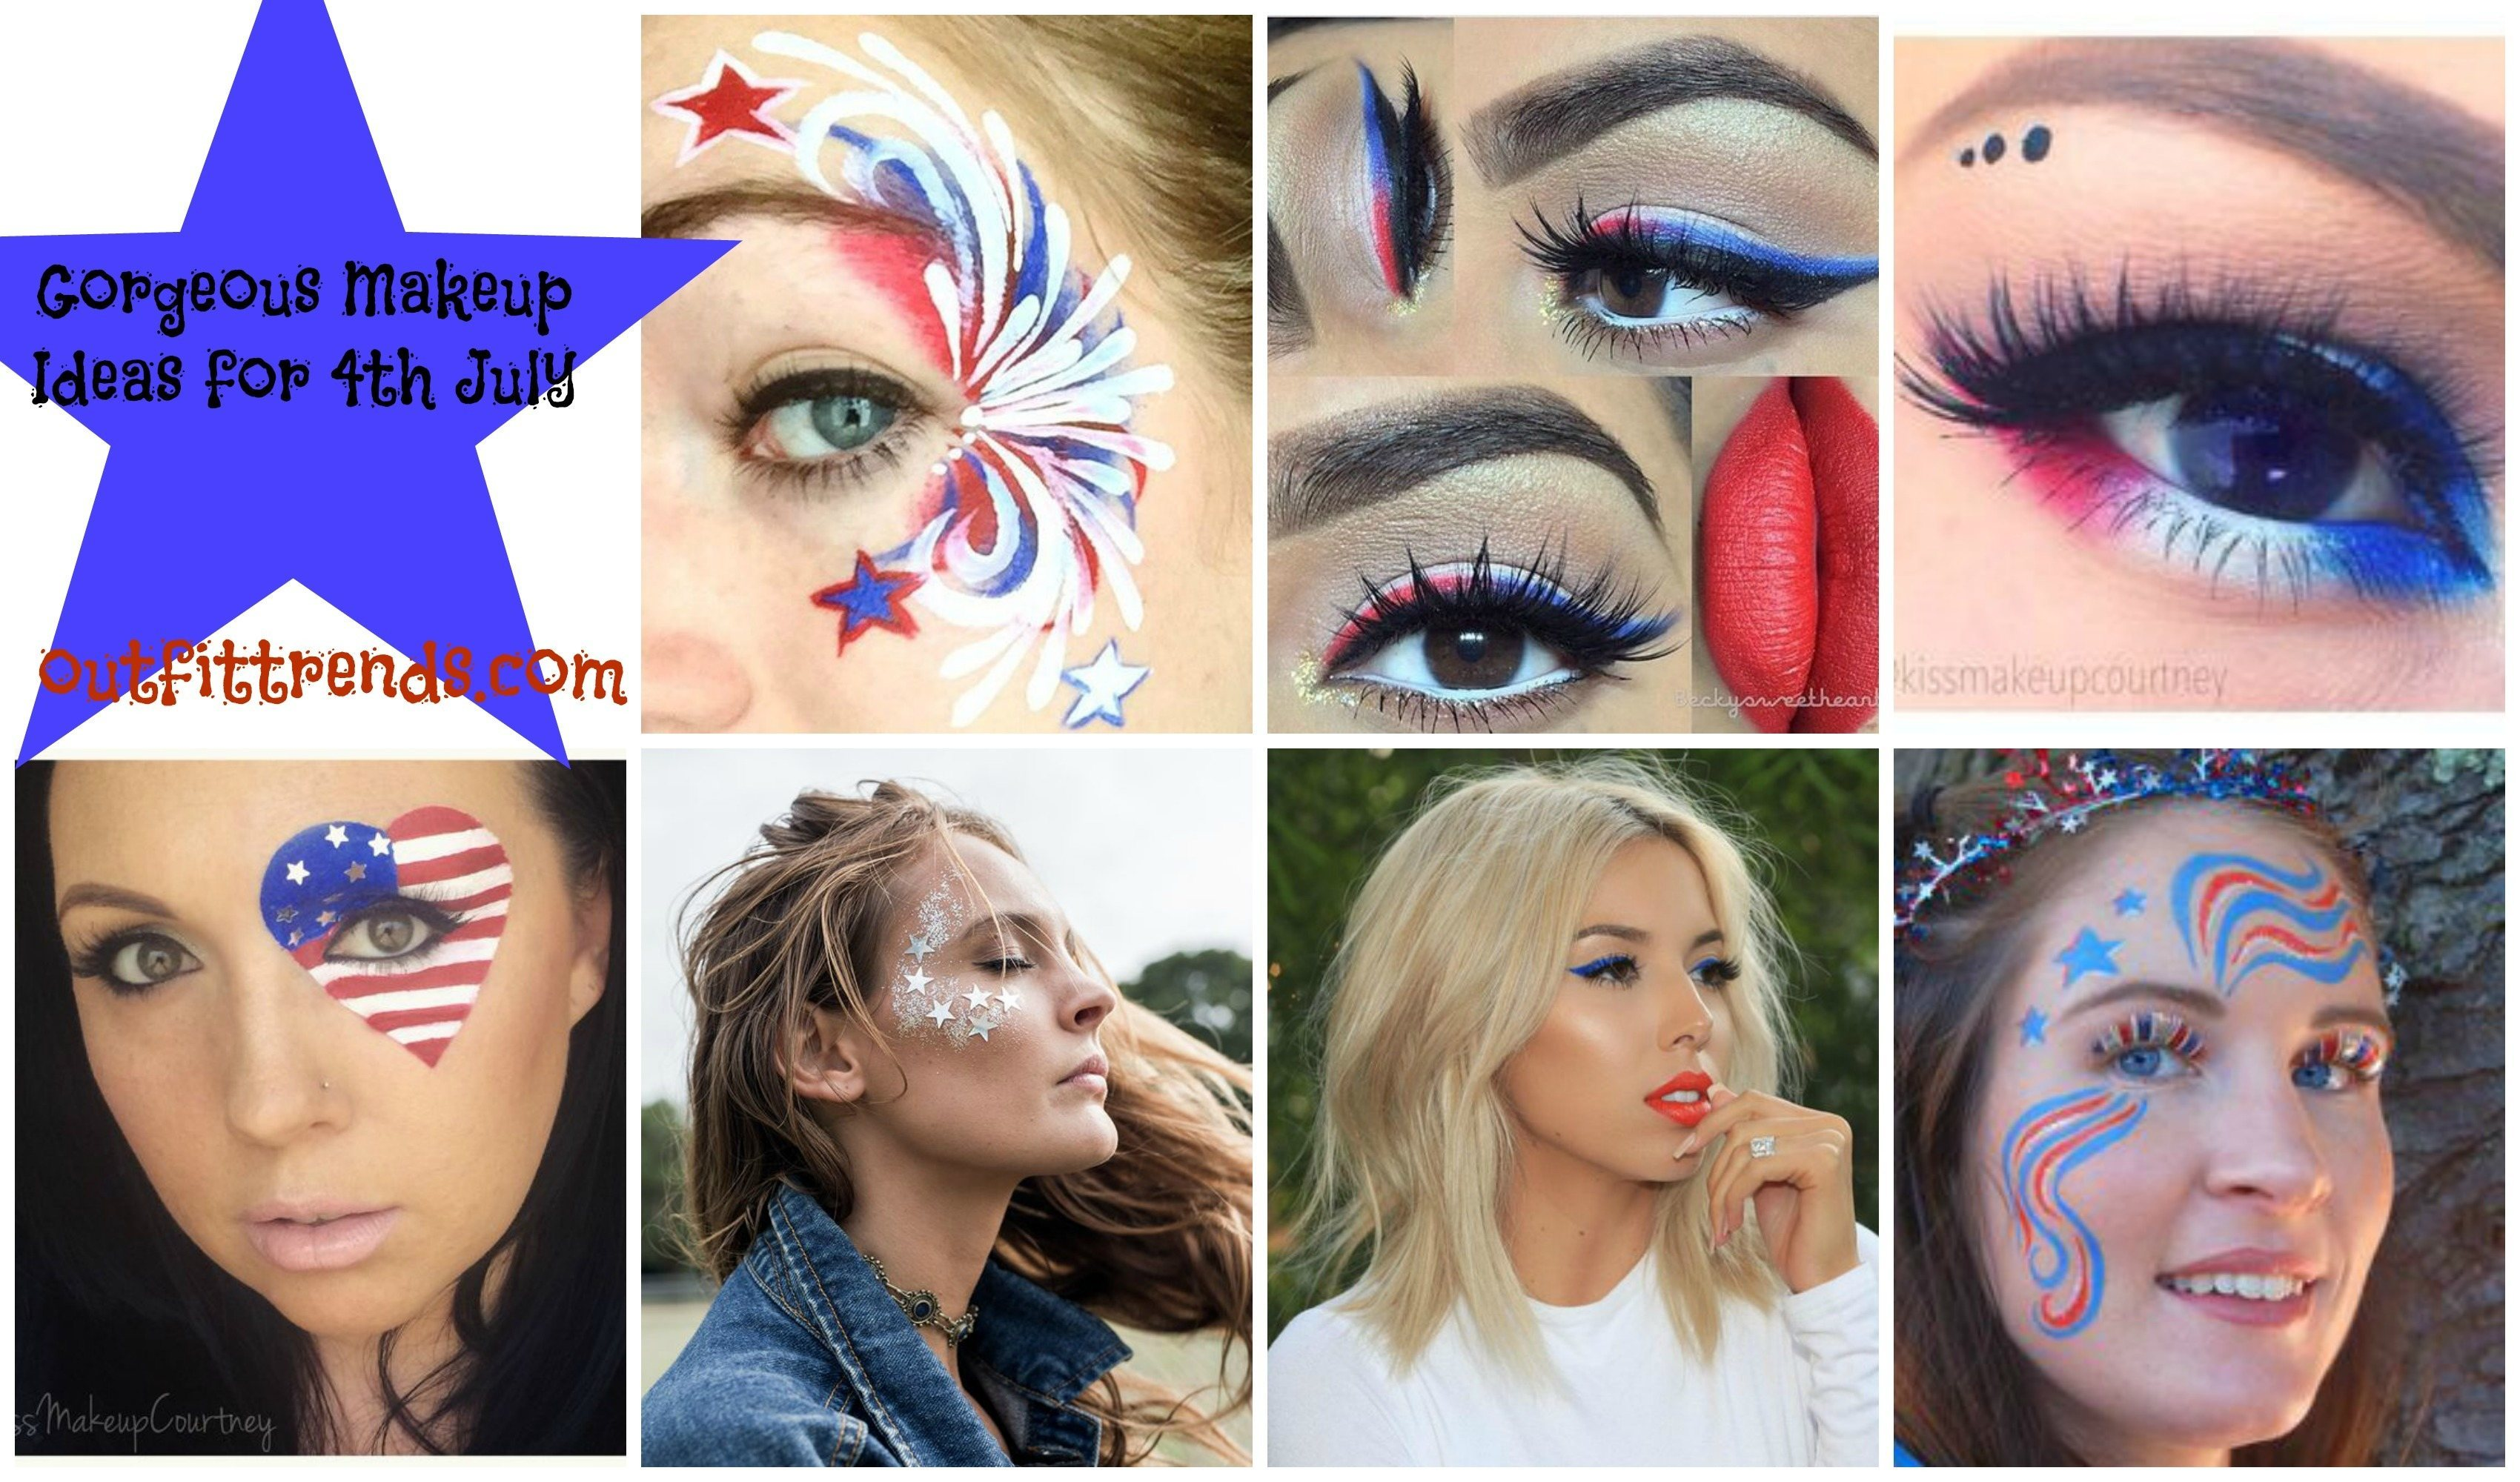 4th july makeup ideas